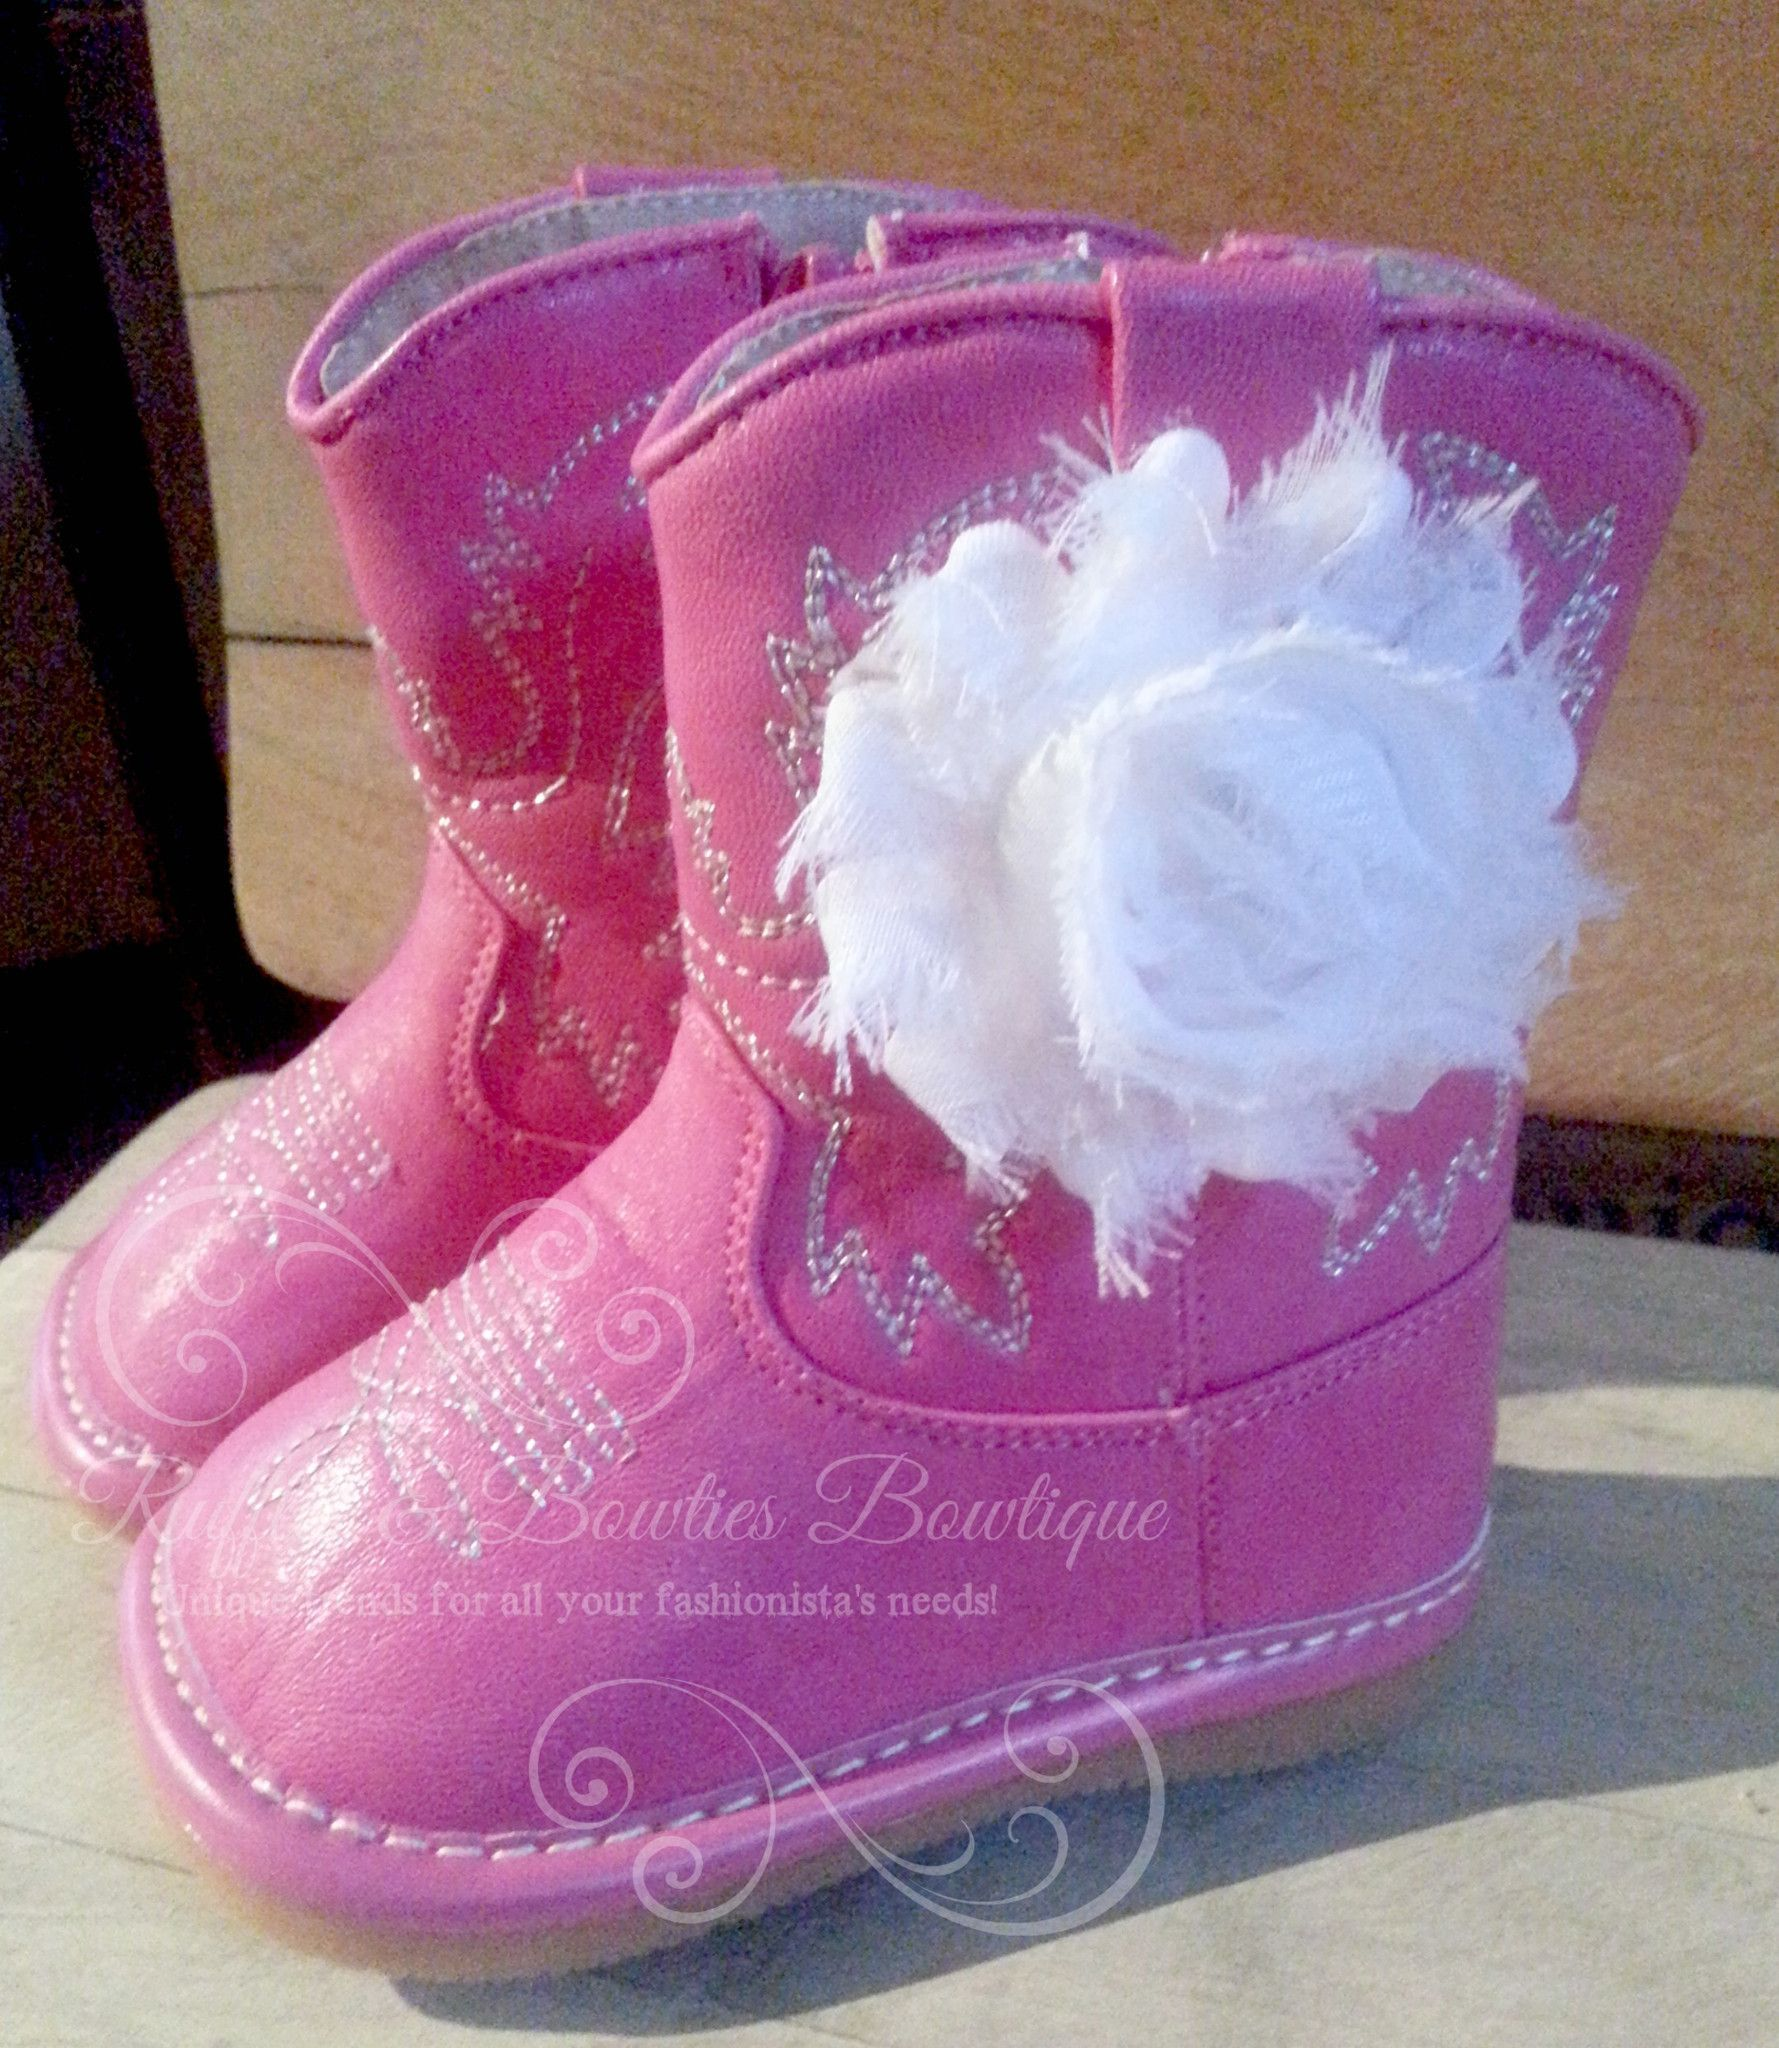 NO FLOWER Hot Pink Leather Squeaky Cowgirl Cowboy Boots With White